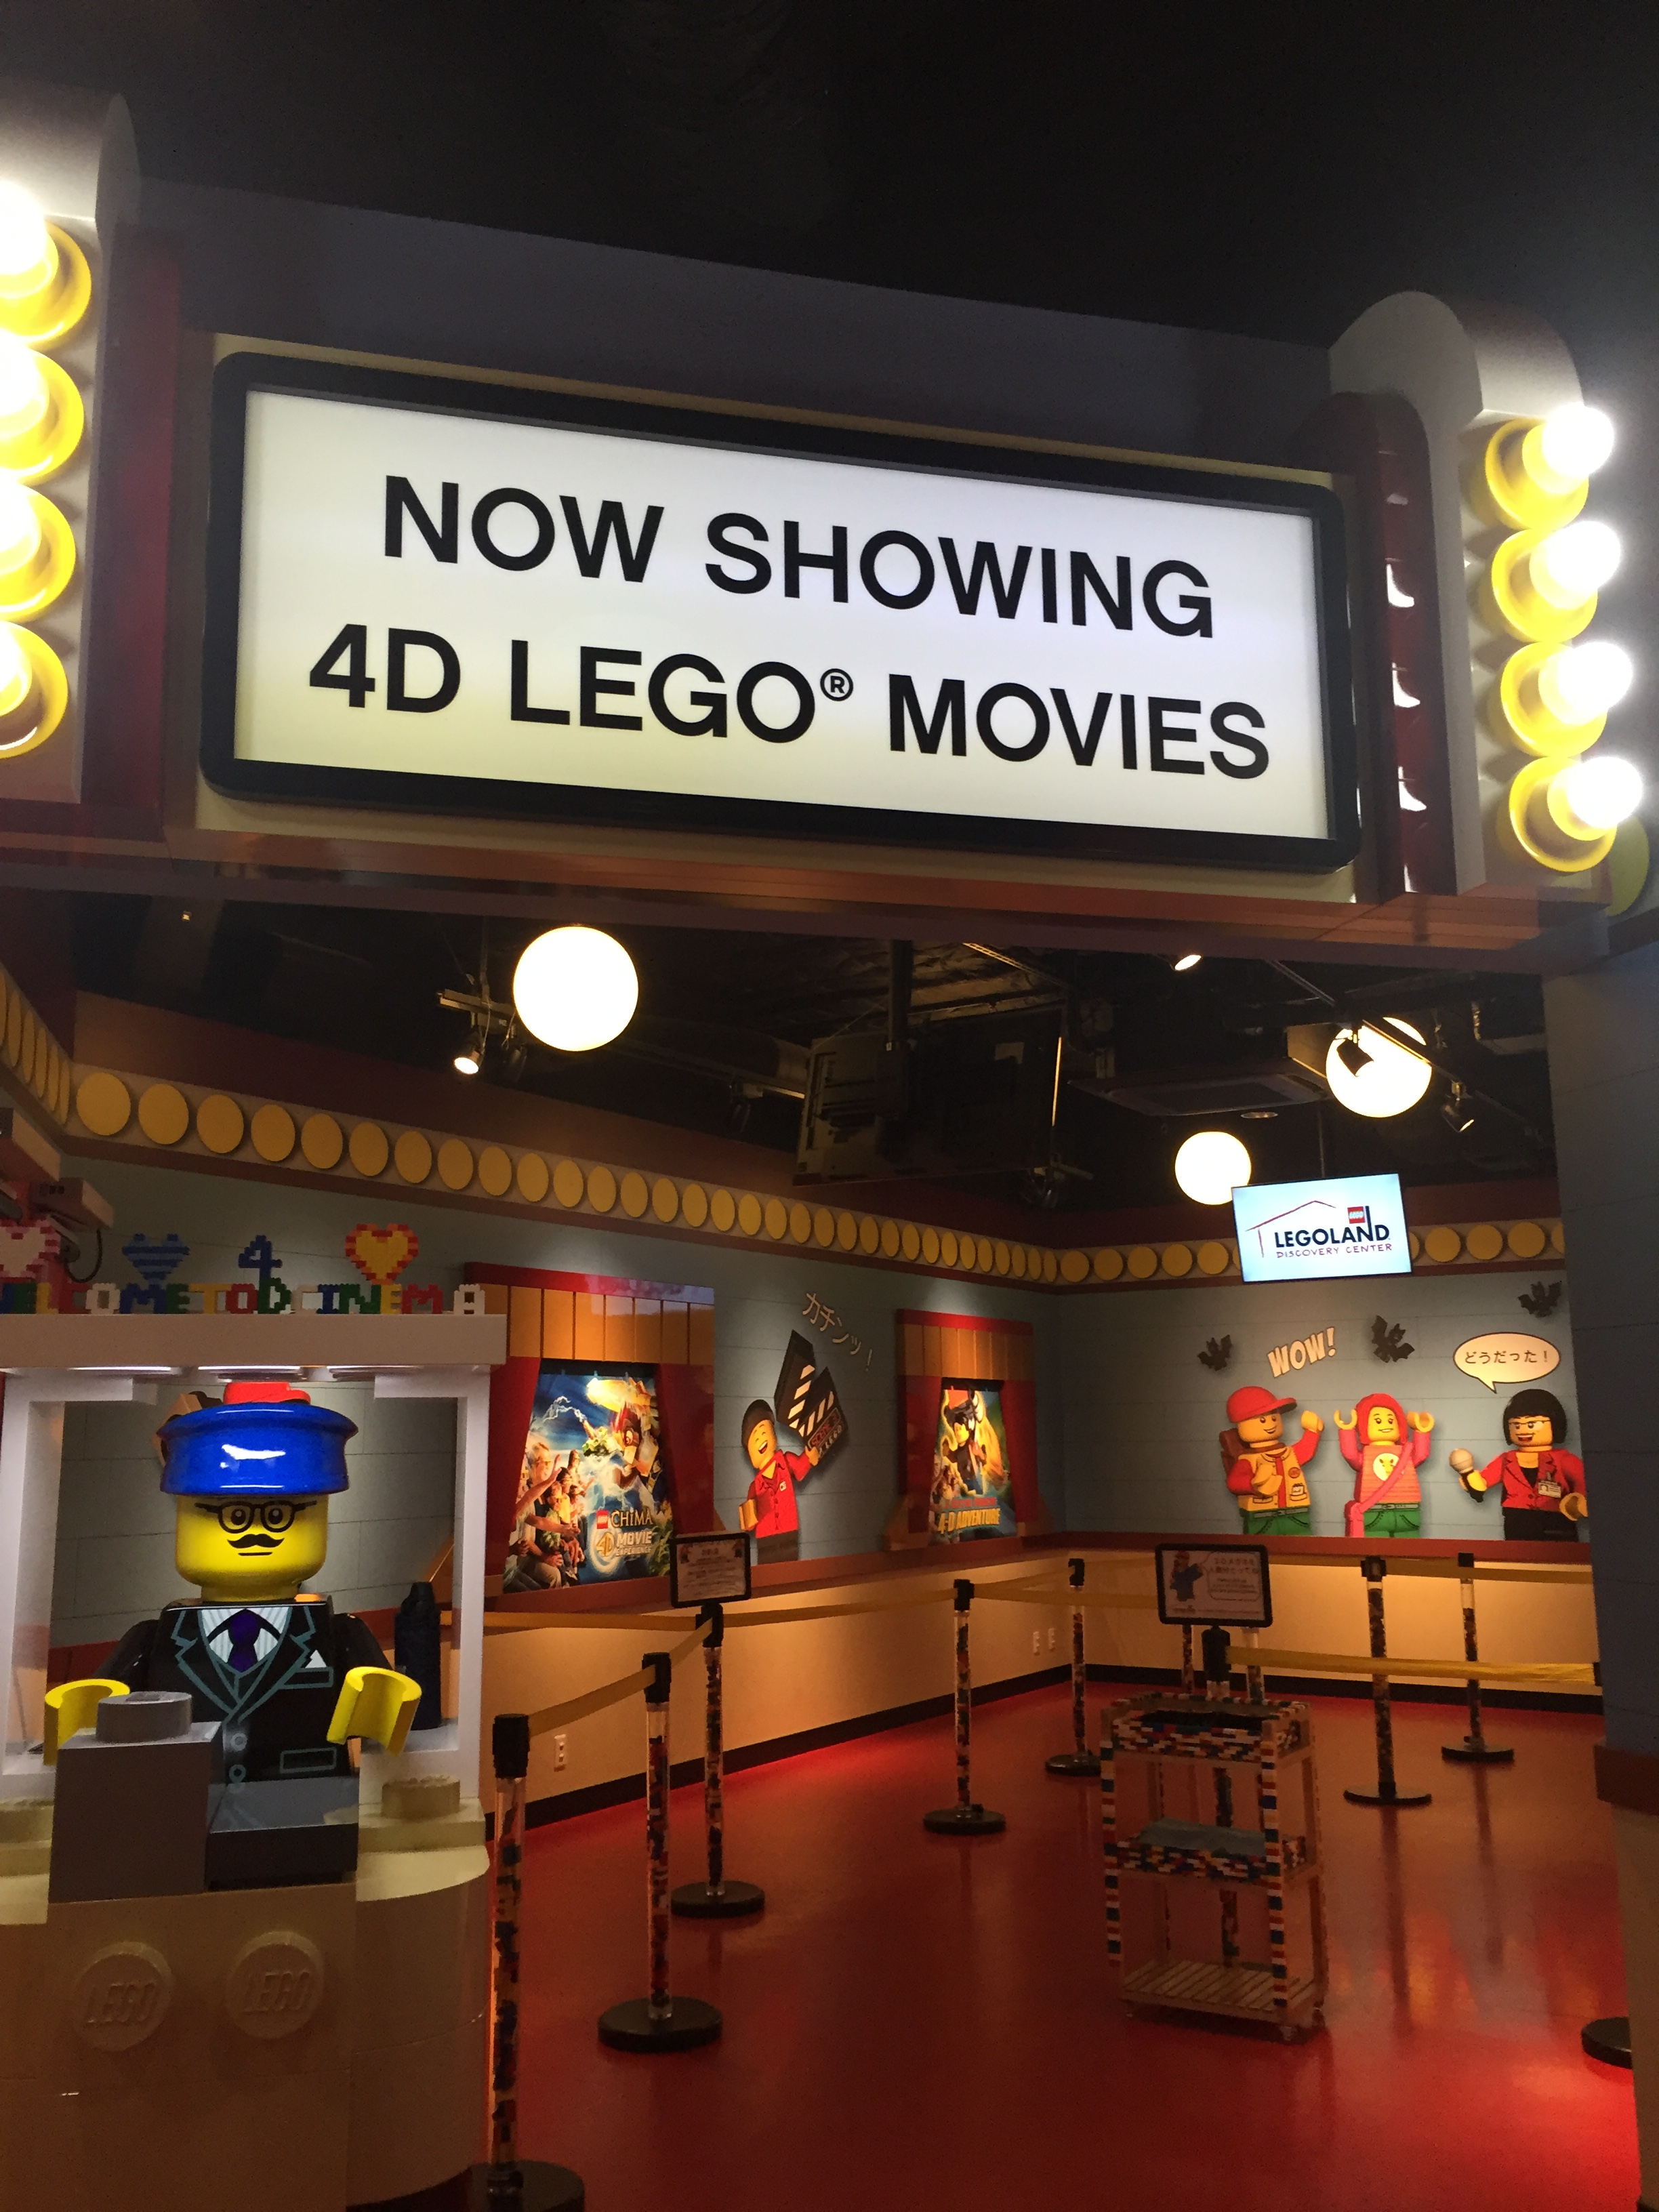 4D-lego-movies